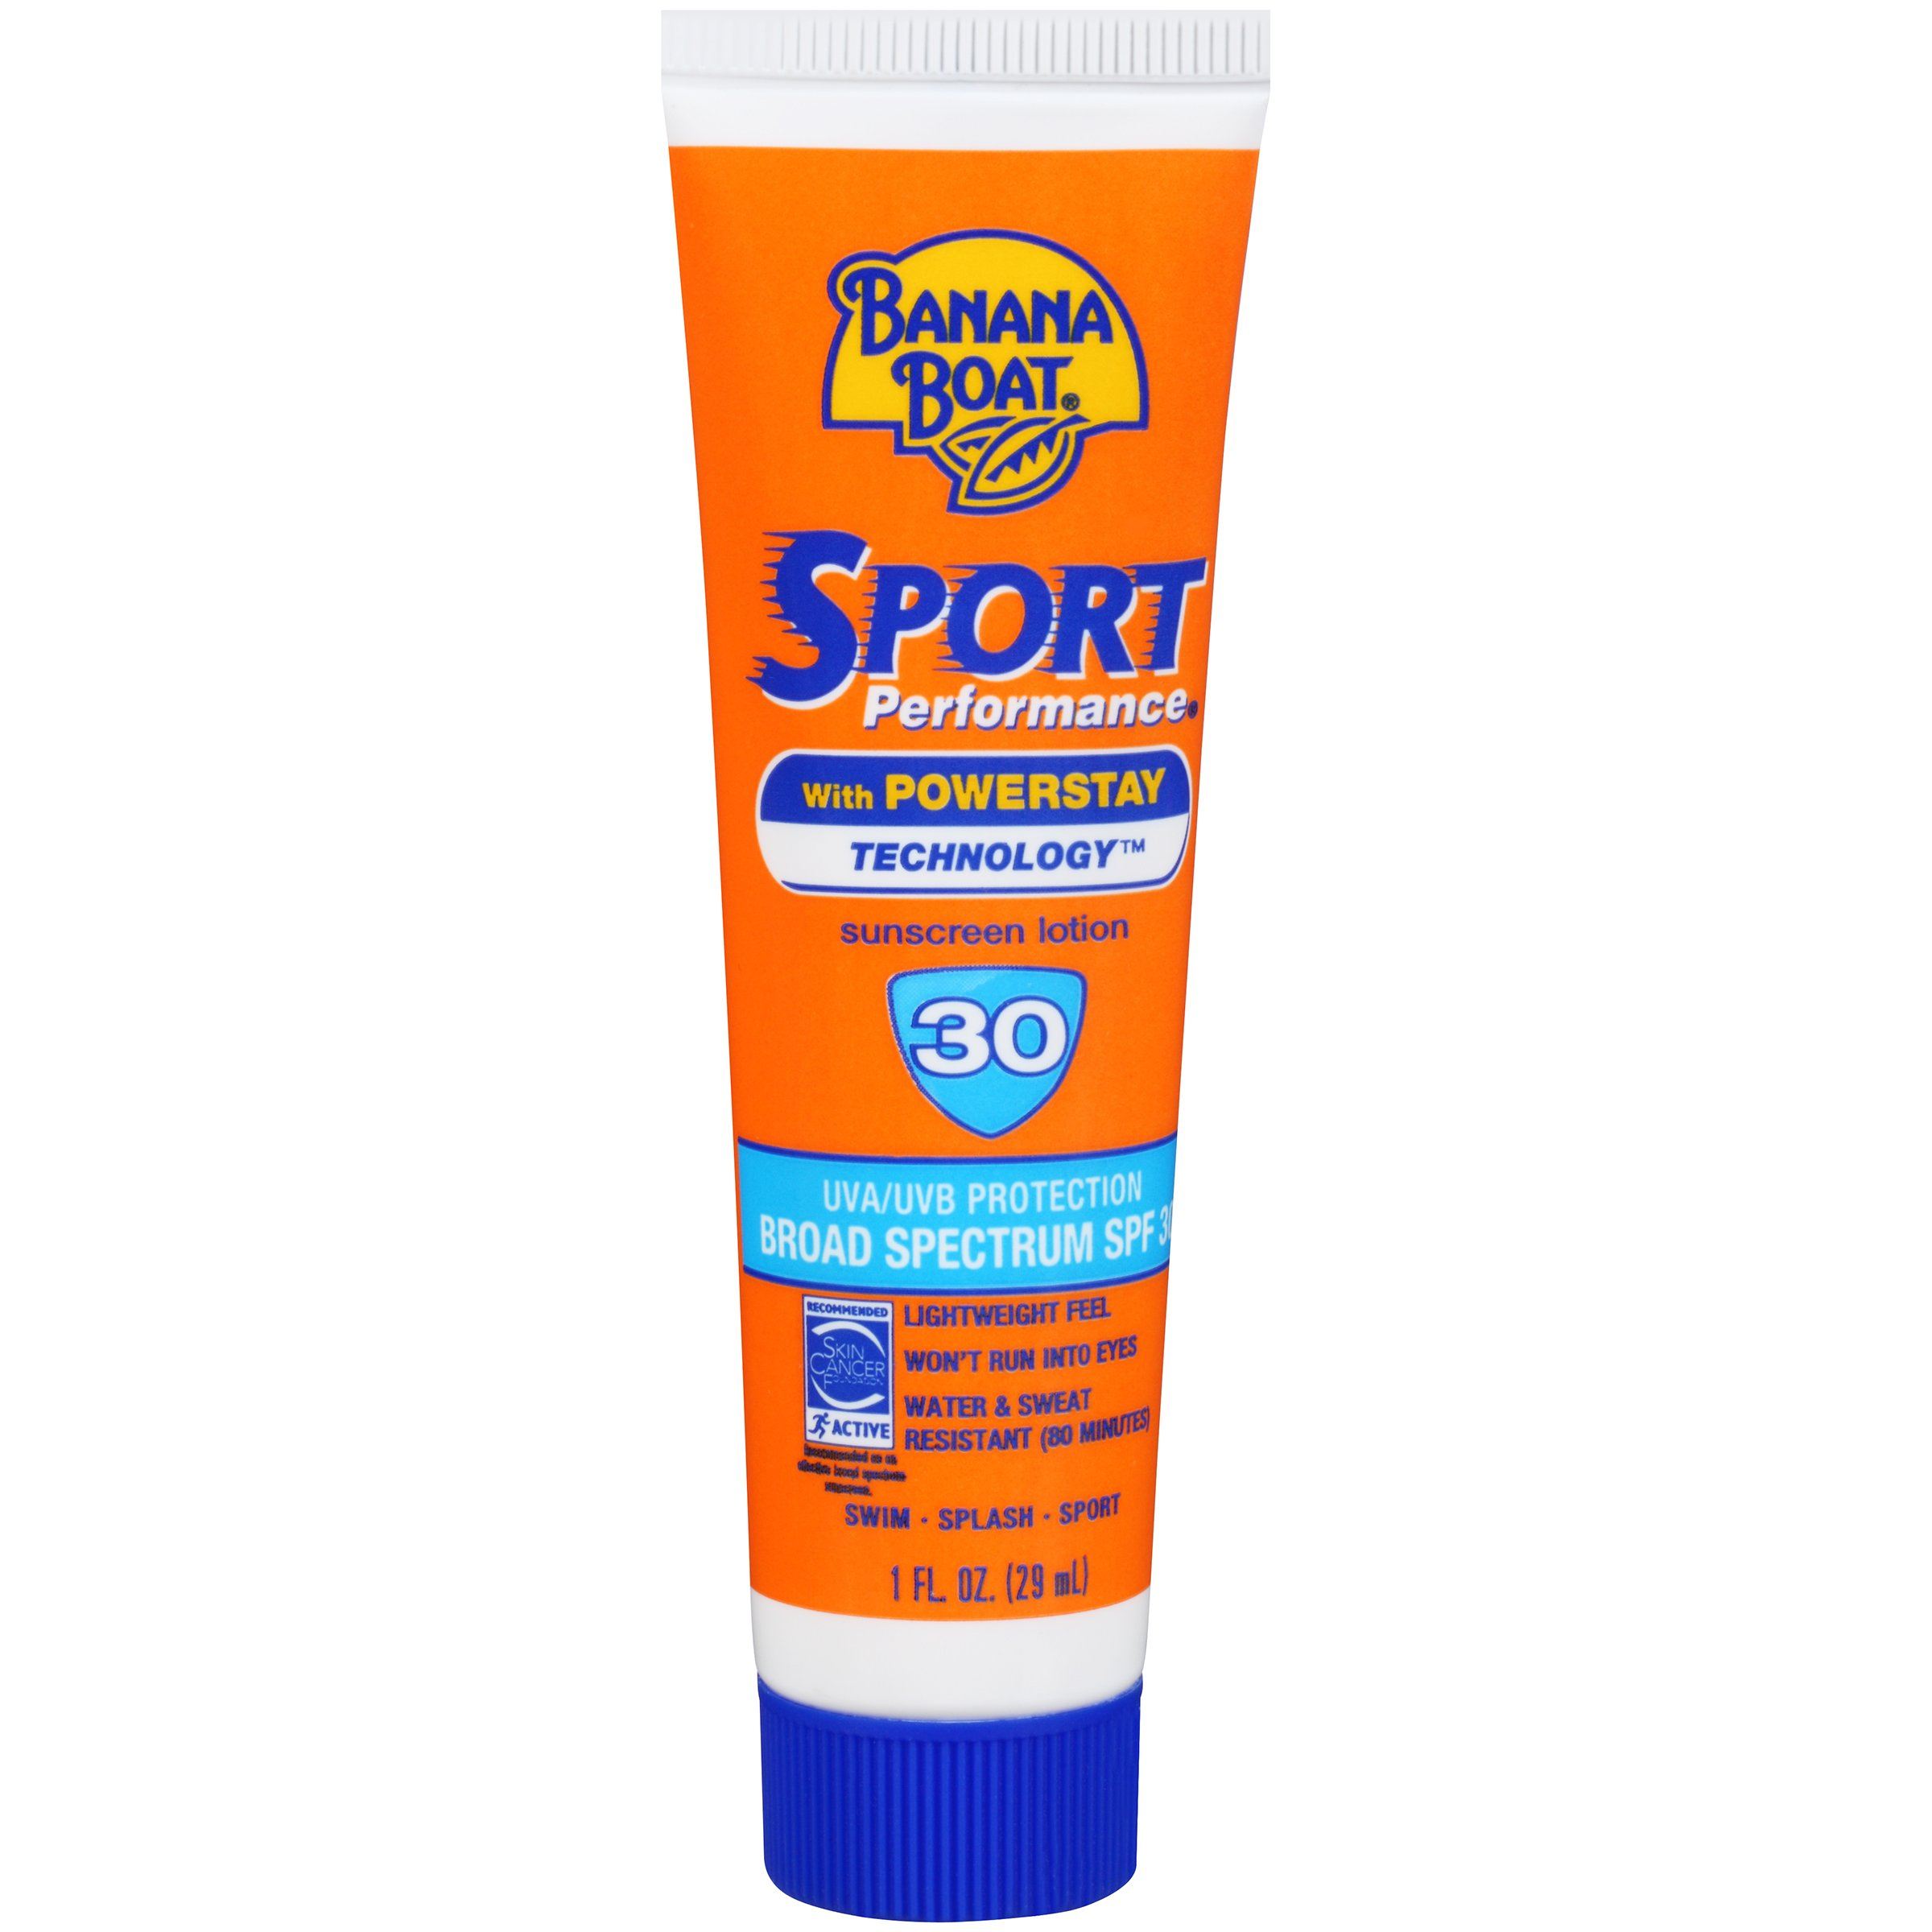 Banana Boat Sport Performance Sunscreen Lotion 30 Spf 1 oz(Pack Of 24)